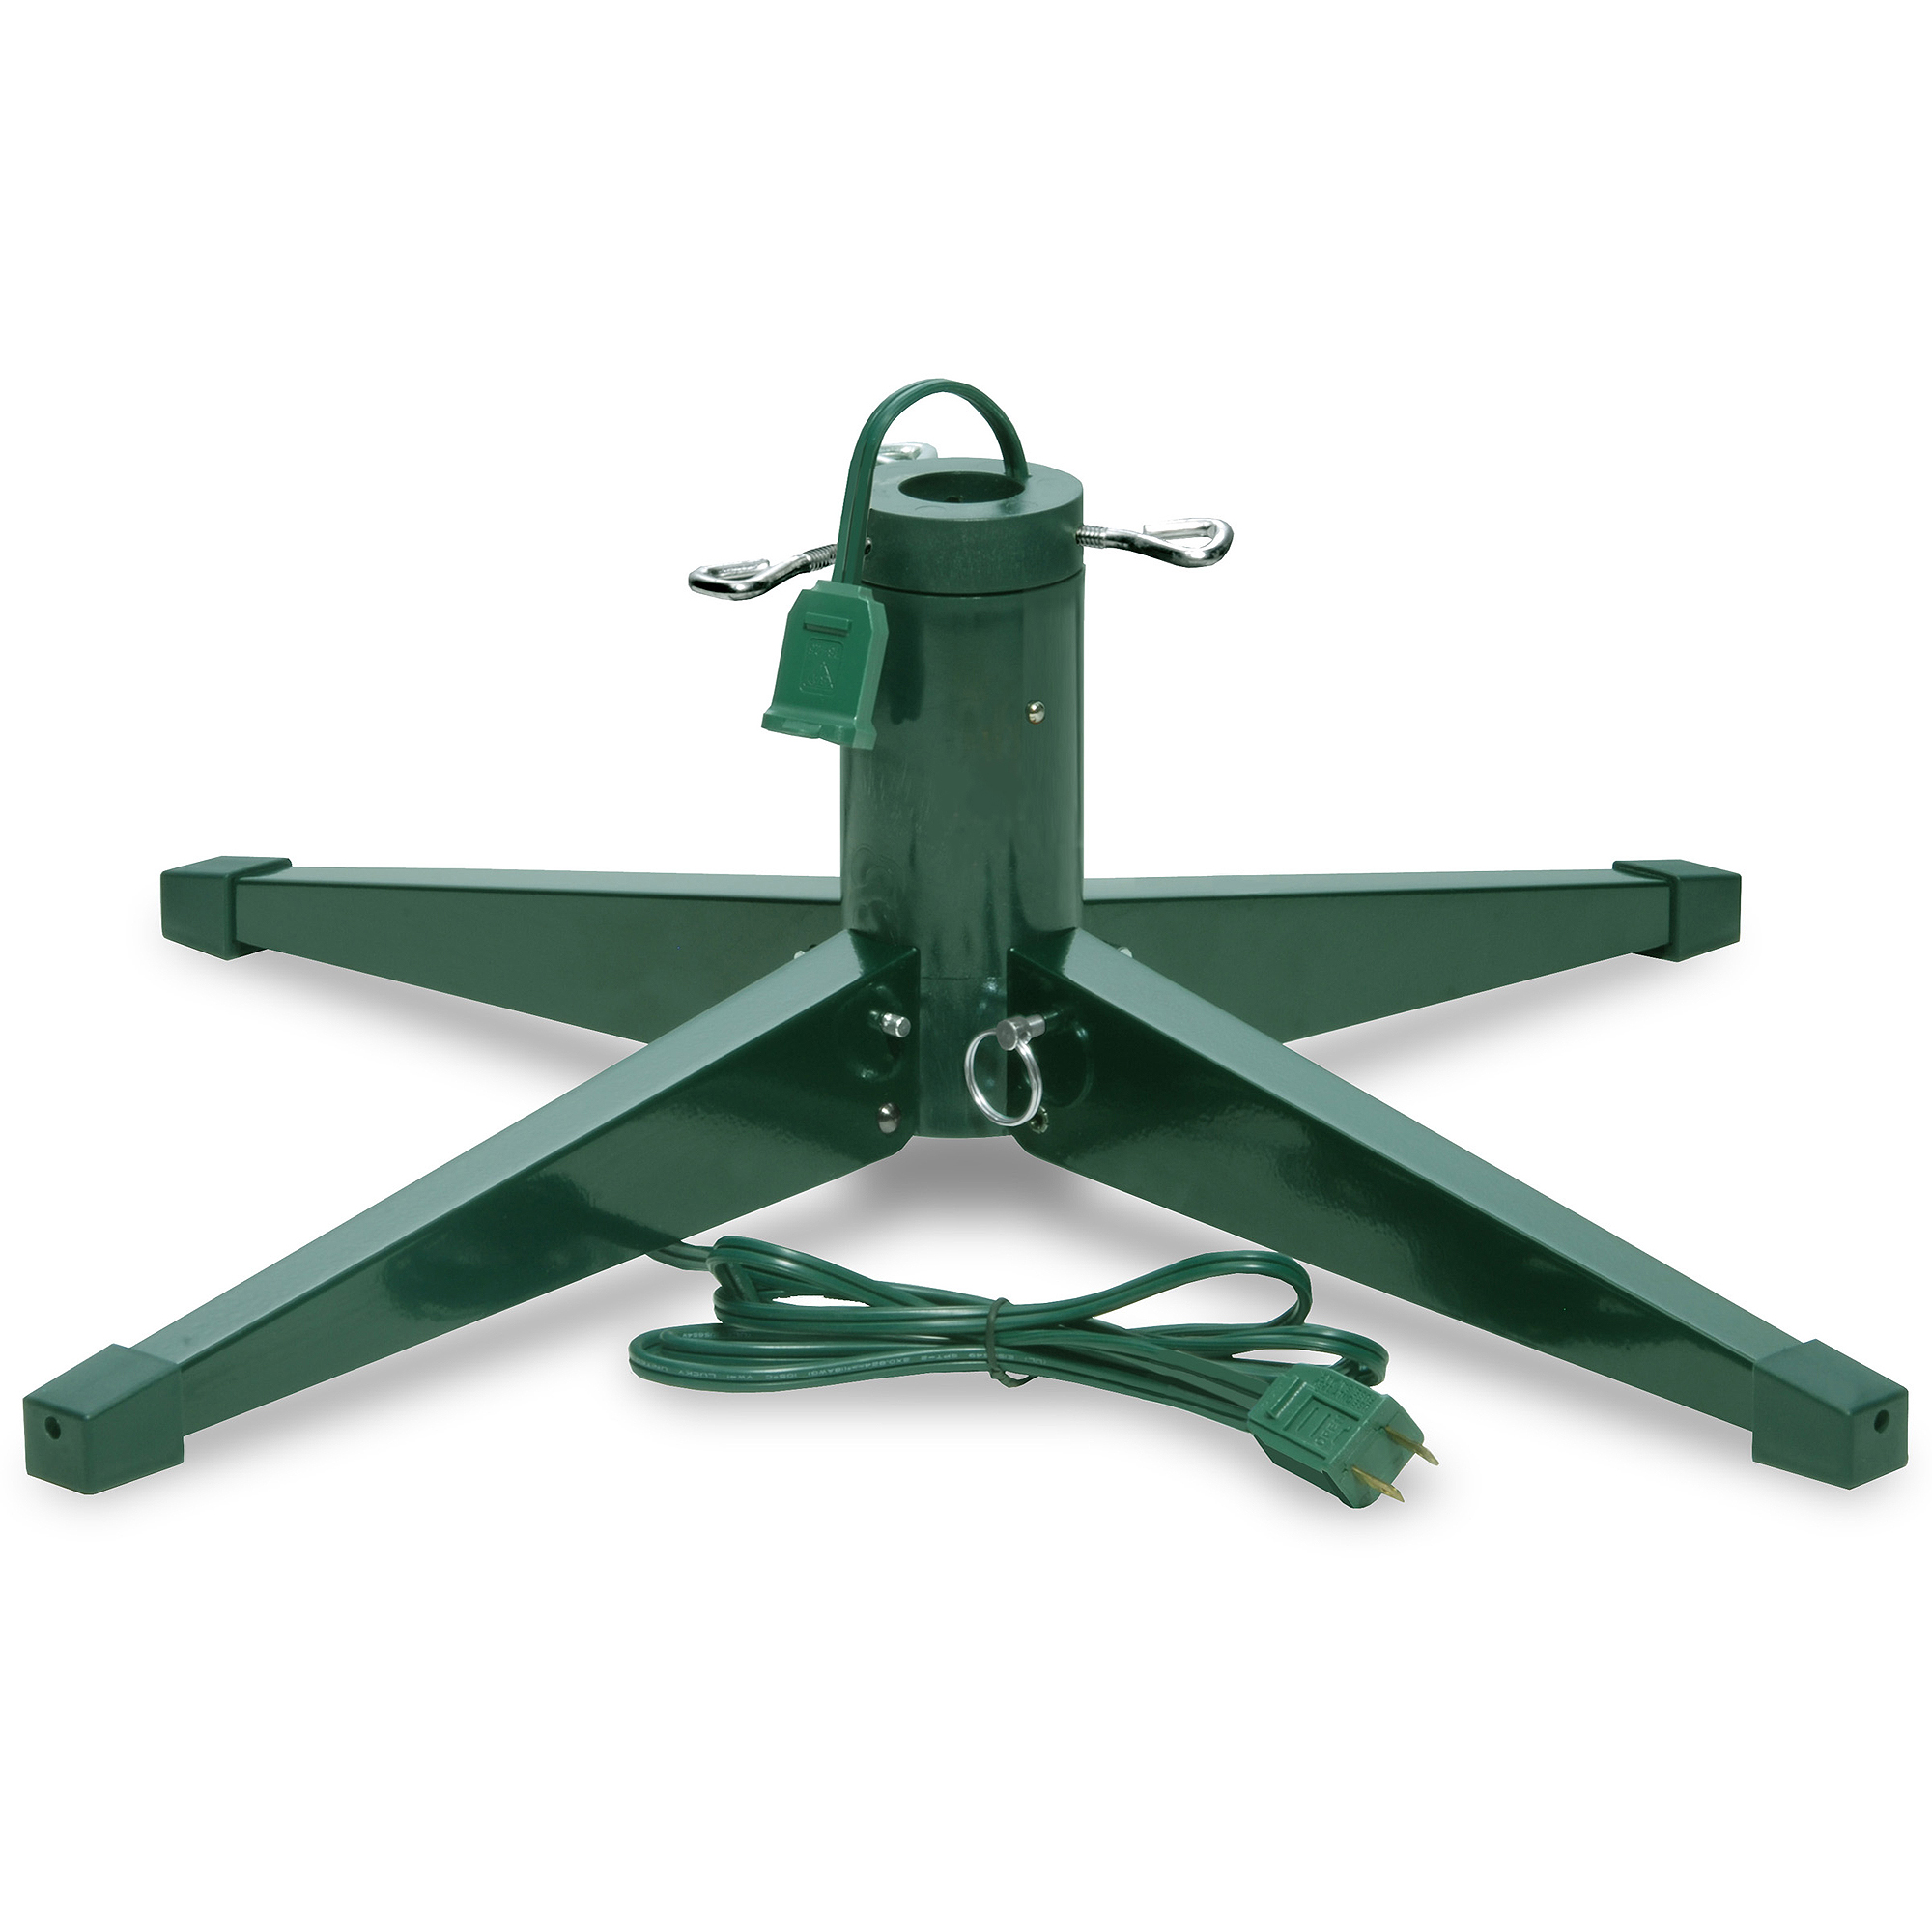 National Tree Revolving Stand, 100 Pound Load Weight